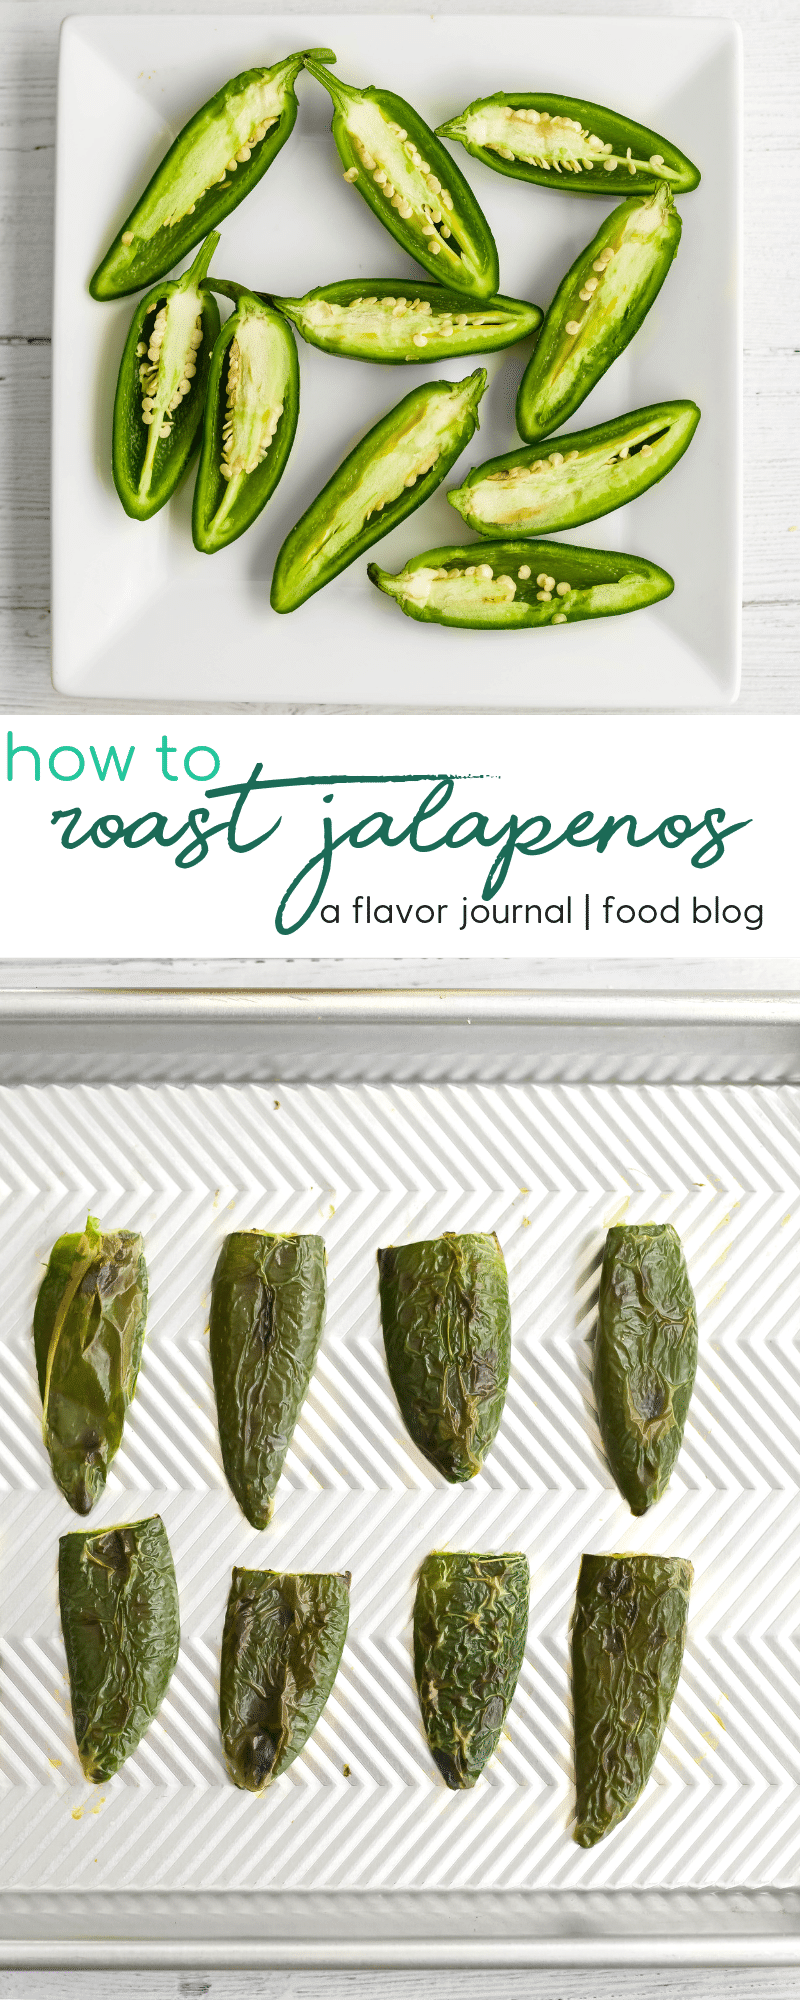 how to make roasted jalapeños in the oven